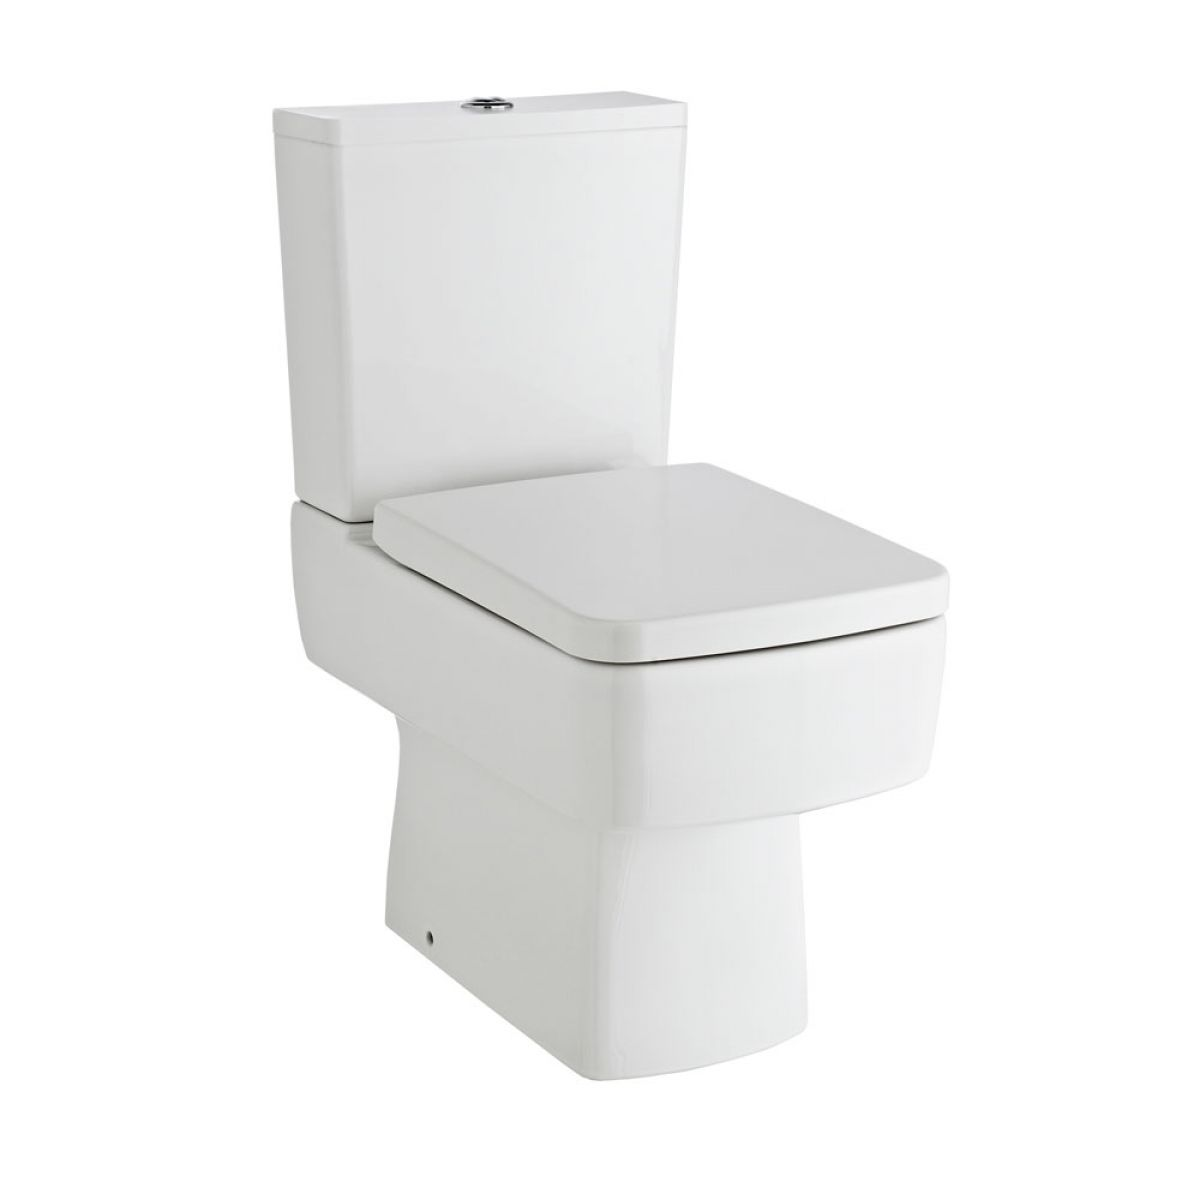 Premier Bliss Close Coupled Toilet with Soft Close Seat